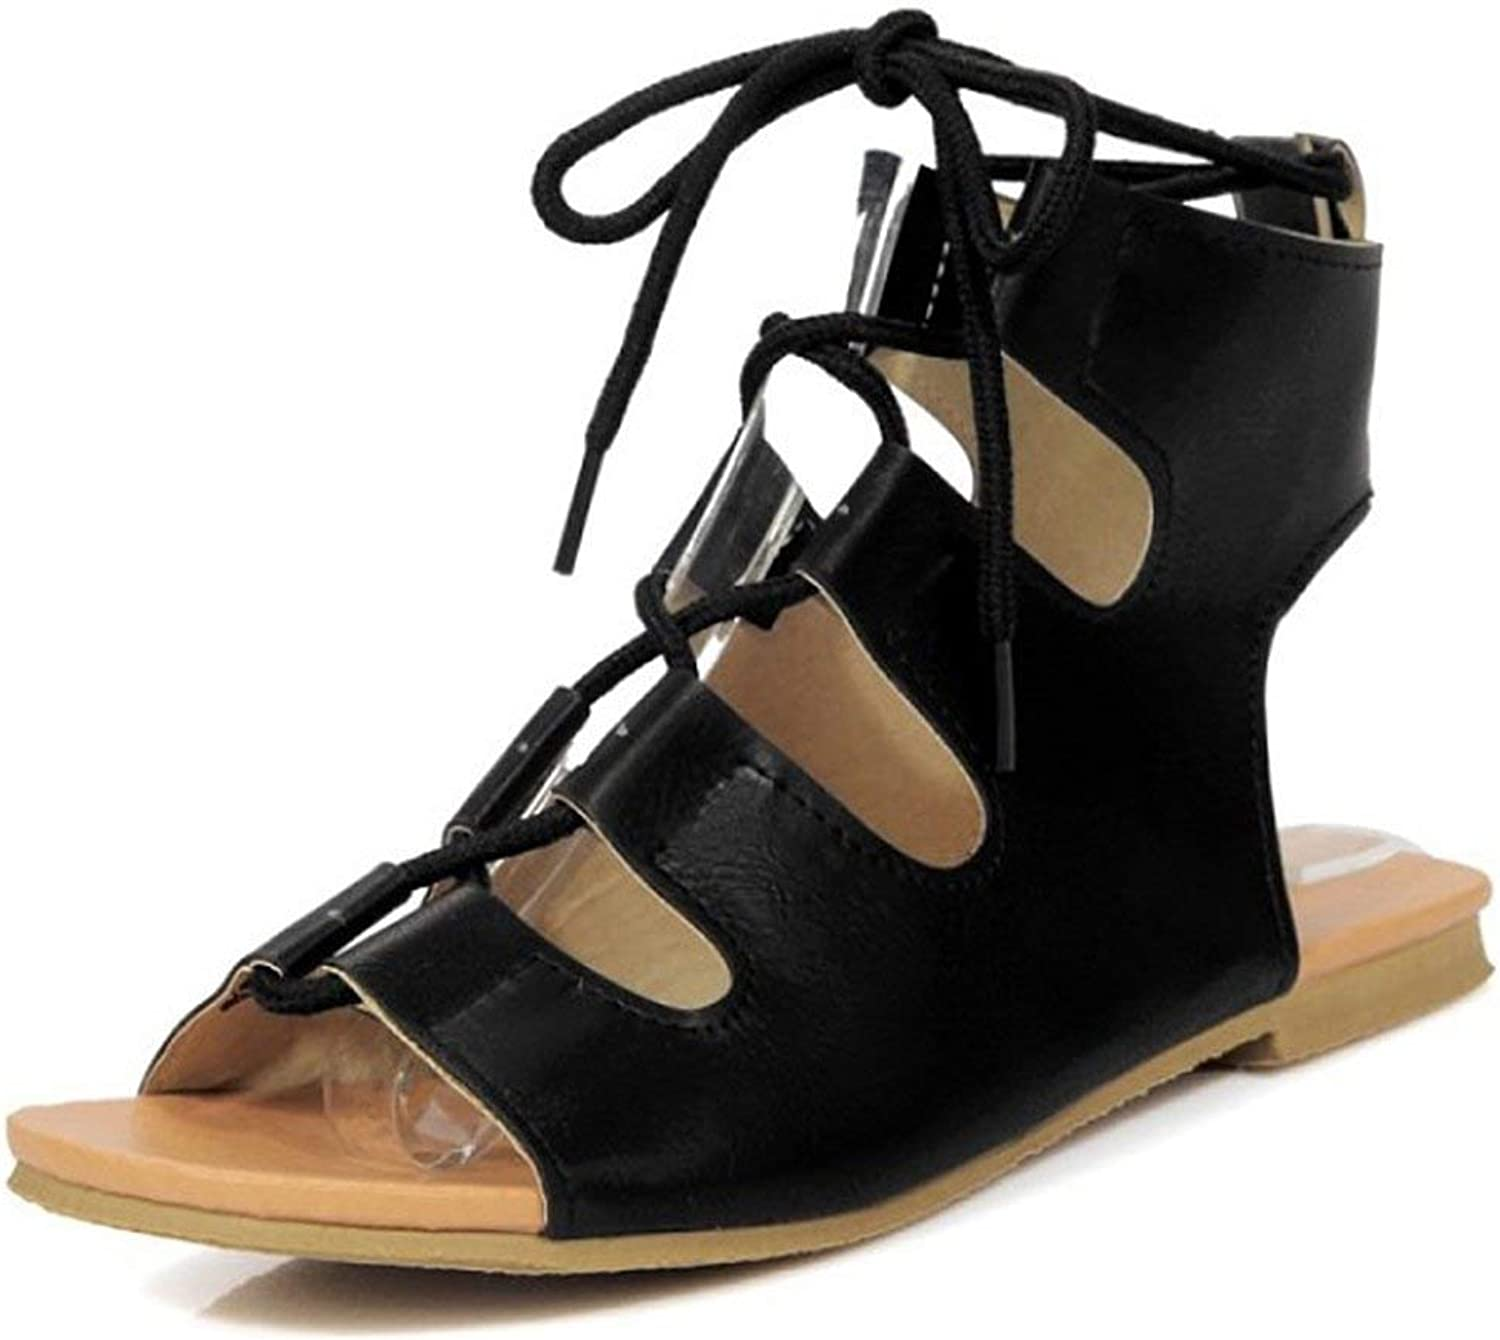 Gcanwea Women's Comfy Ankle High Booties Cut Out Lace-up Flat Gladiator Sandals Comfortable Fashion Lightweight Pu Leather Summer Non-Slip Soles Strappy Casual Black 4 M US Flat Gladiator Sandals